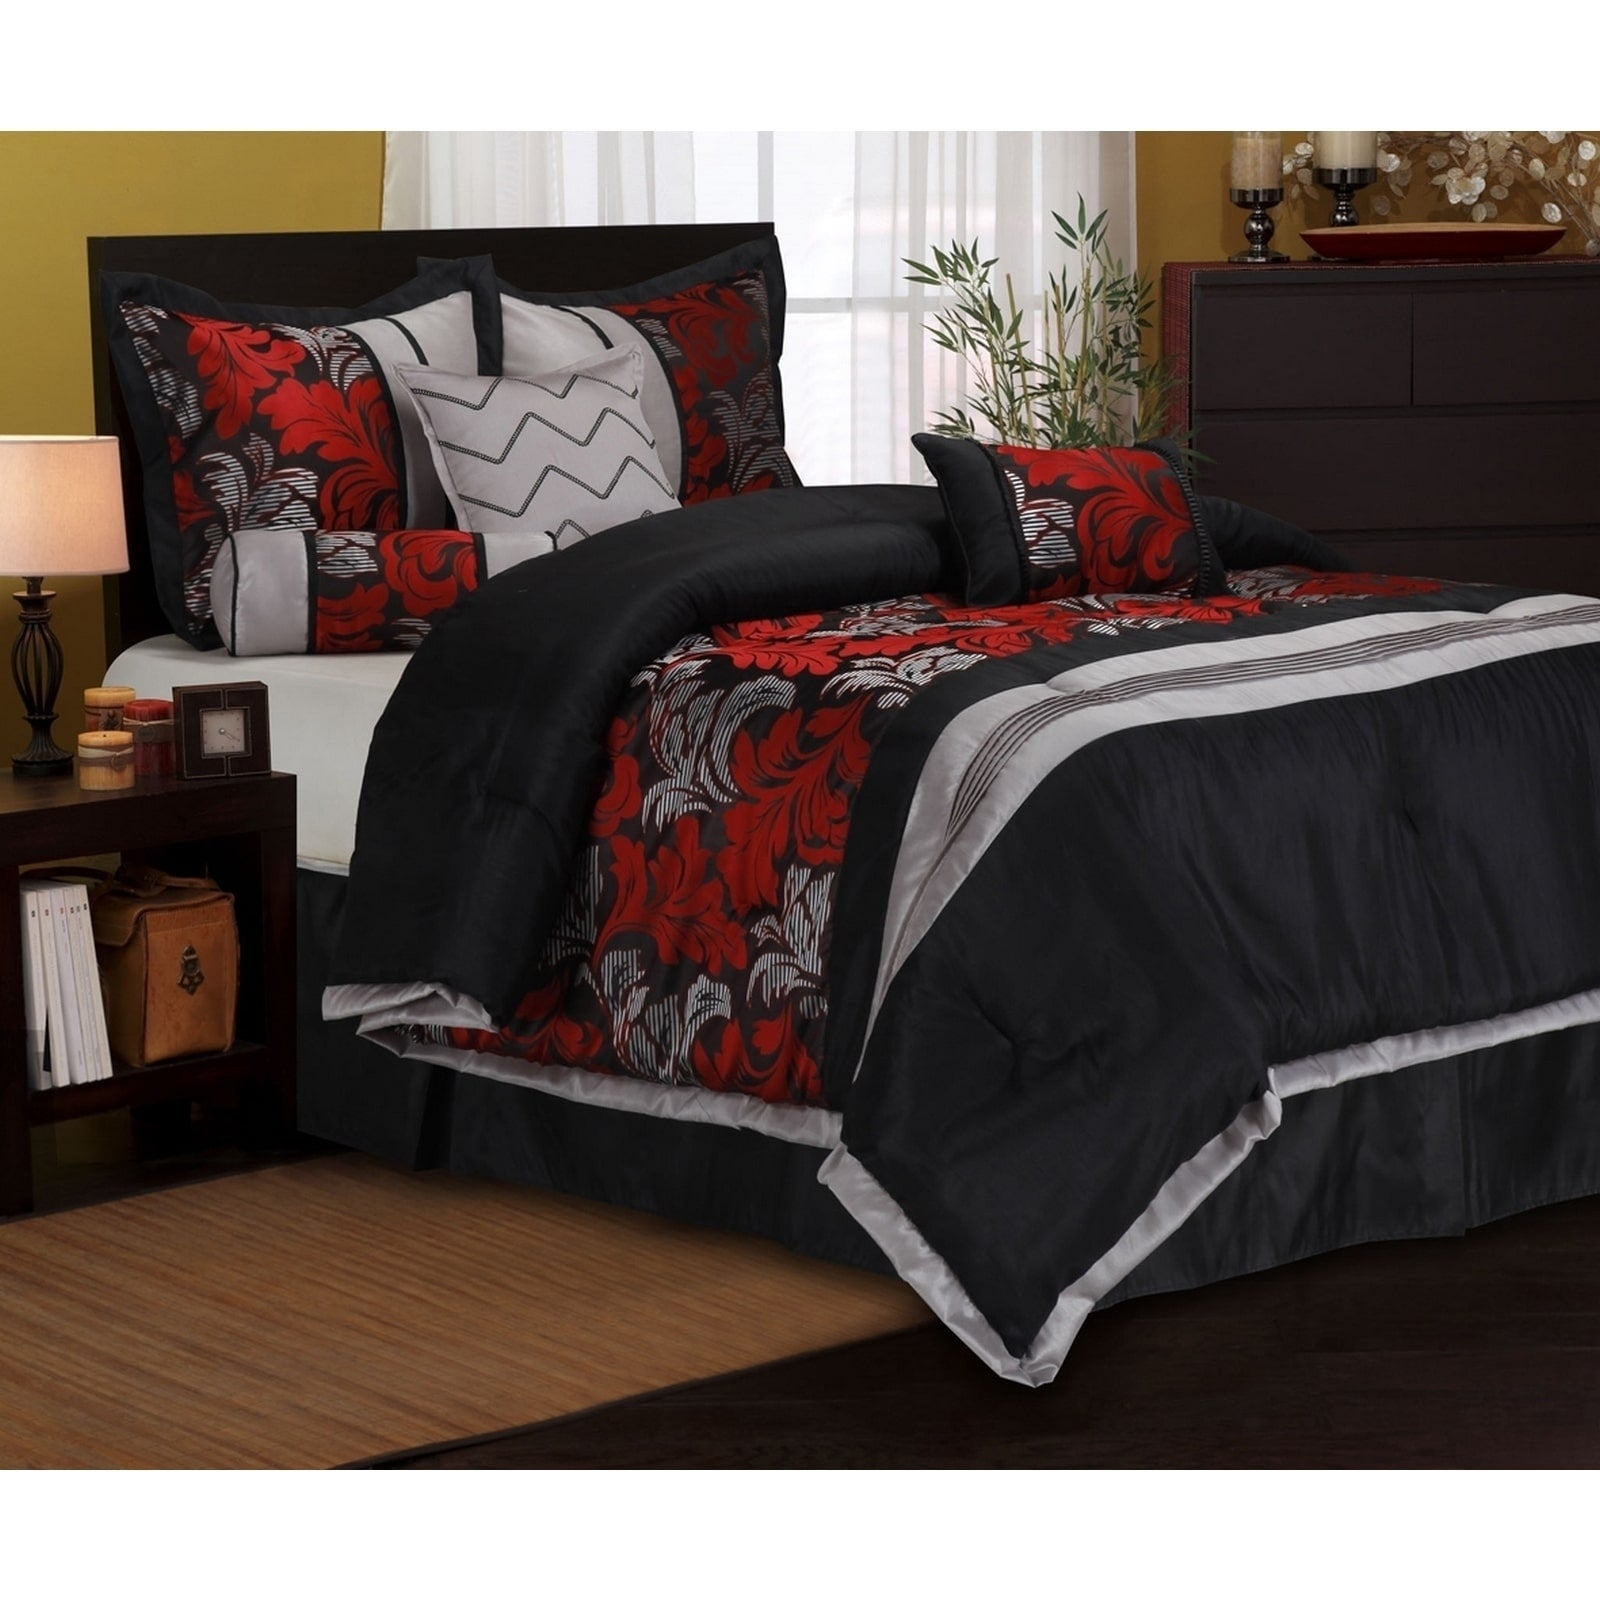 Lincoln Embroidered Red Black 7 Piece Comforter Set Ebay